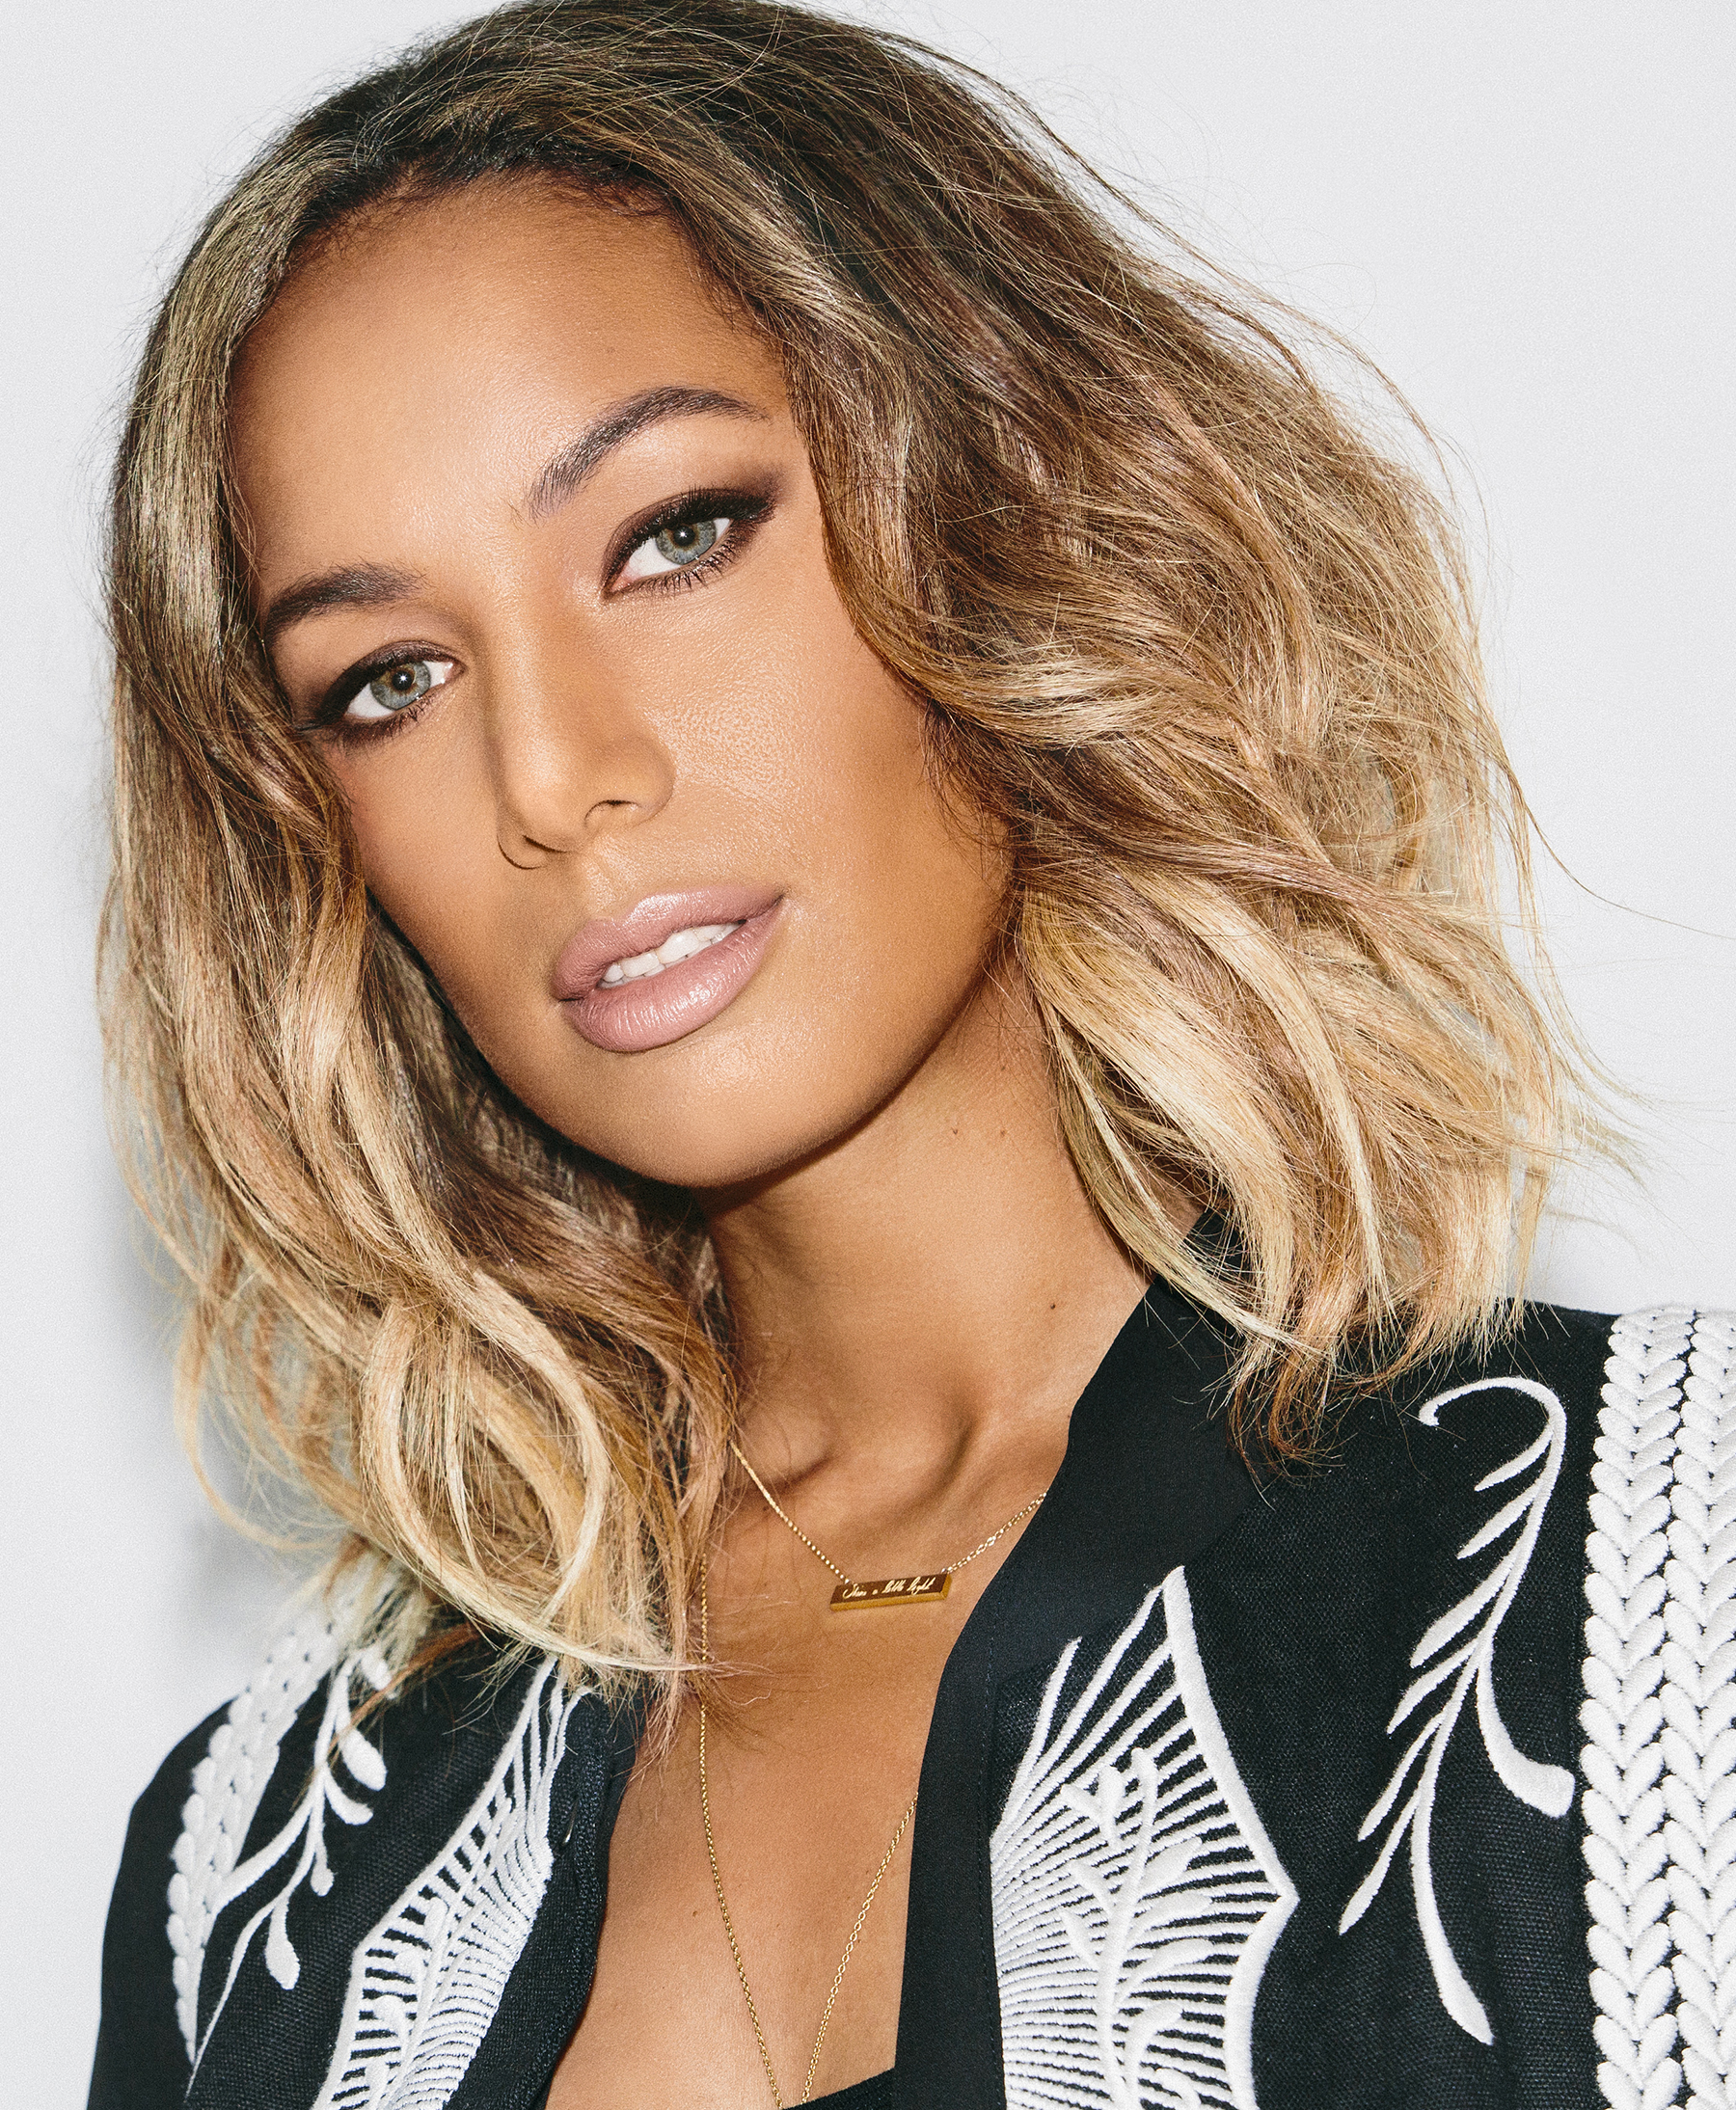 Leona Lewis' new album I Am is available now.